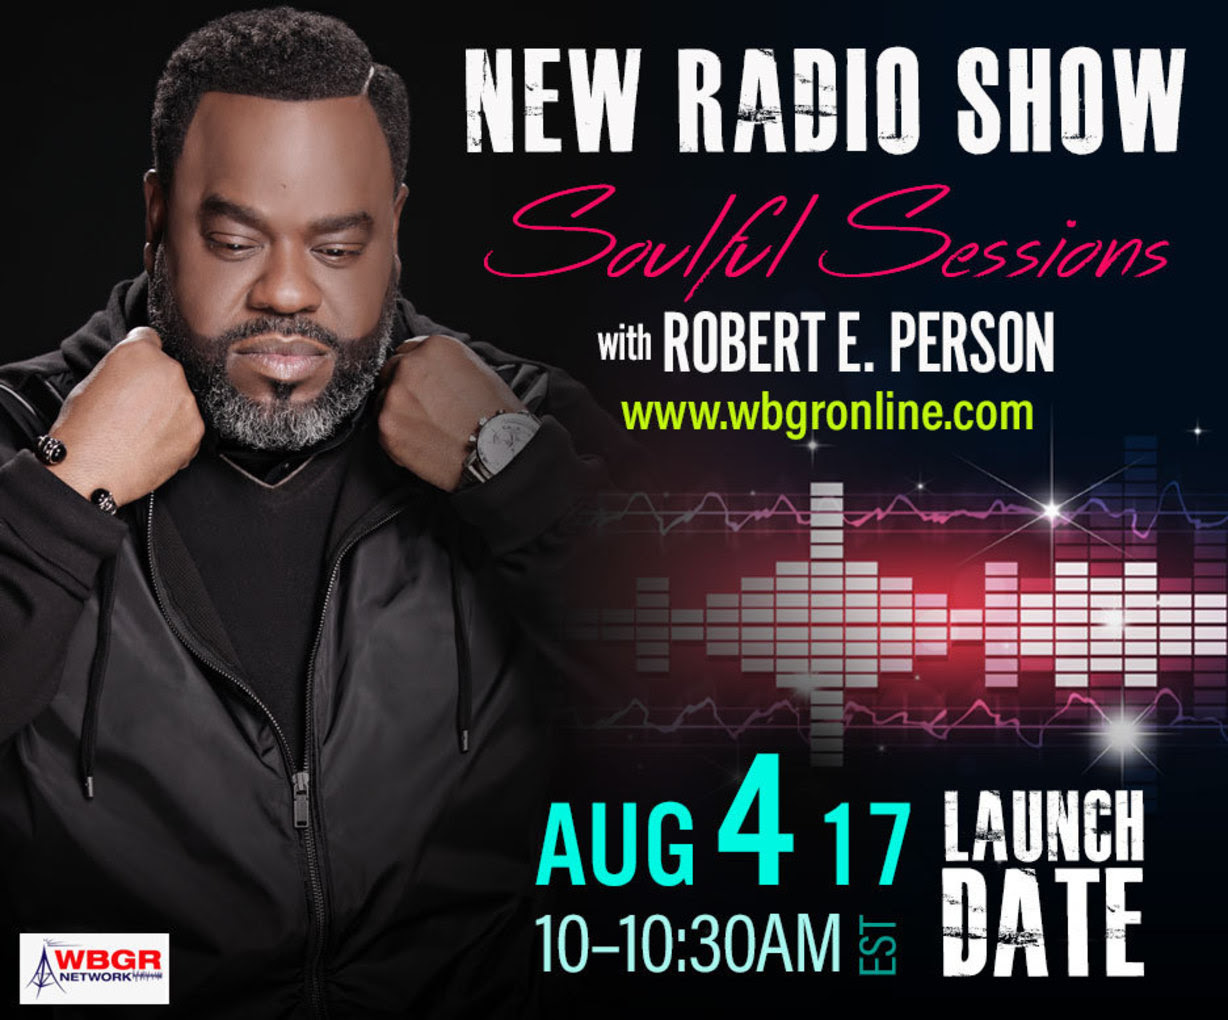 Robert E. Person launches Soulful Sessions radio show on WBGR Gospel Network